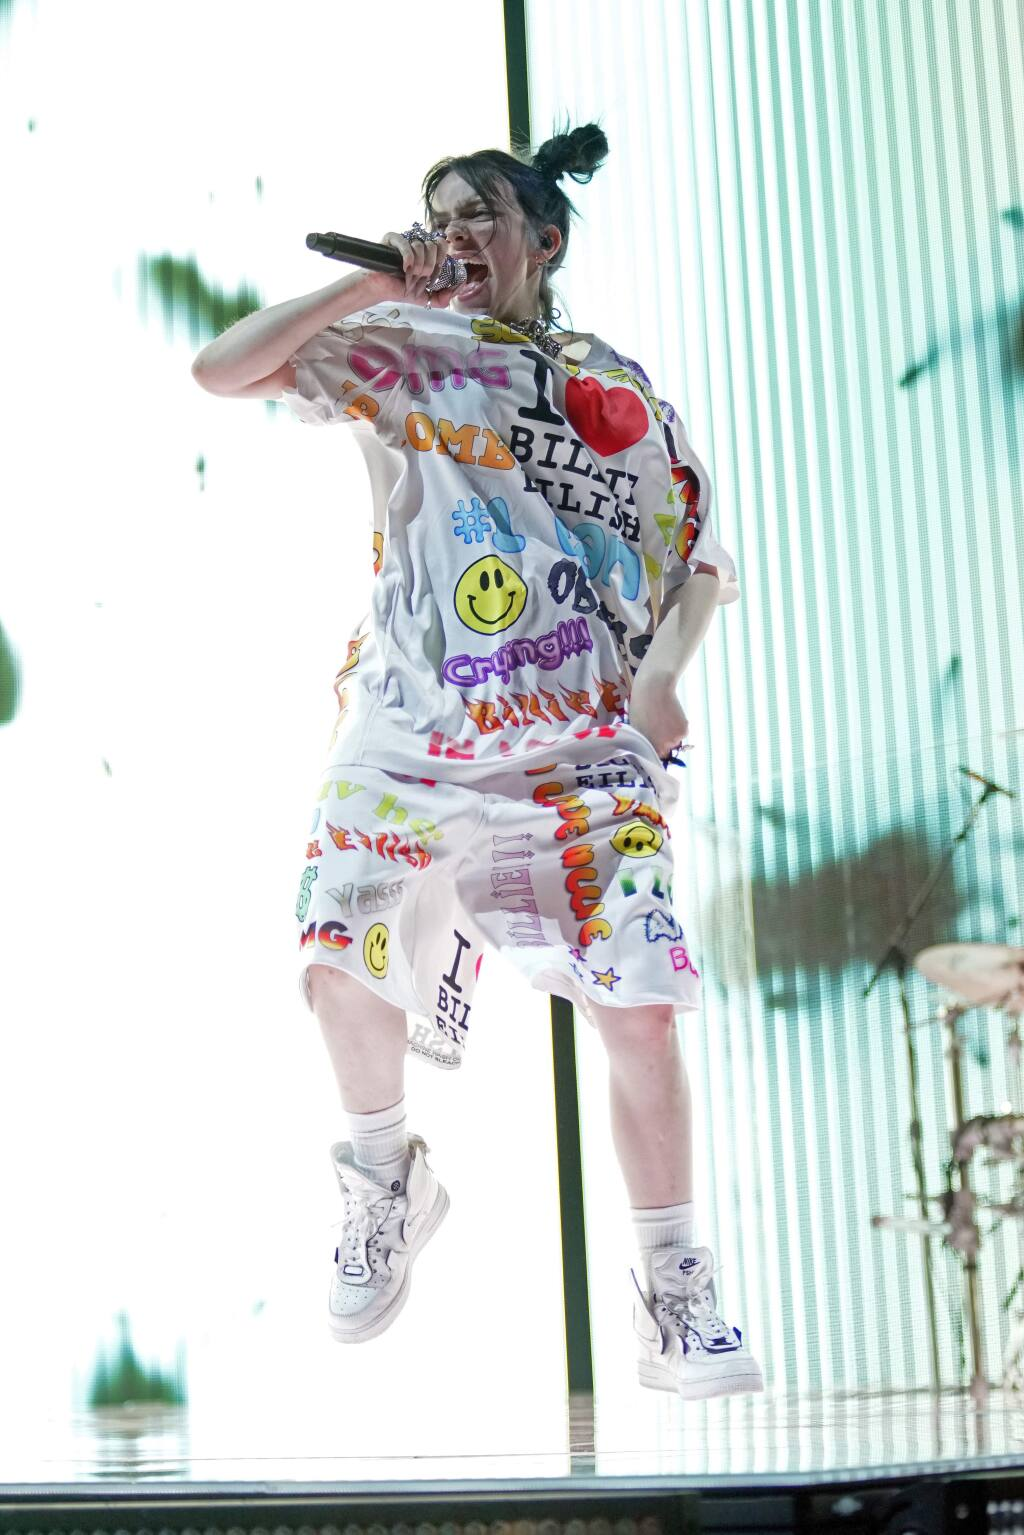 """FILE - This June 9, 2019 file photo shows Billie Eilish performing during the 'When We All Fall Asleep' tour in Chicago. Eilish will be the first recipient of the Apple Music Award for global artist of the year, one of three honors for the pop singer. Apple announced Monday that Eilish's """"When We All Fall Asleep, Where Do We Go?"""" has been named album of the year. Eilish and her brother Finneas will also receive songwriter of the year honors. (Photo by Rob Grabowski/Invision/AP, File)"""